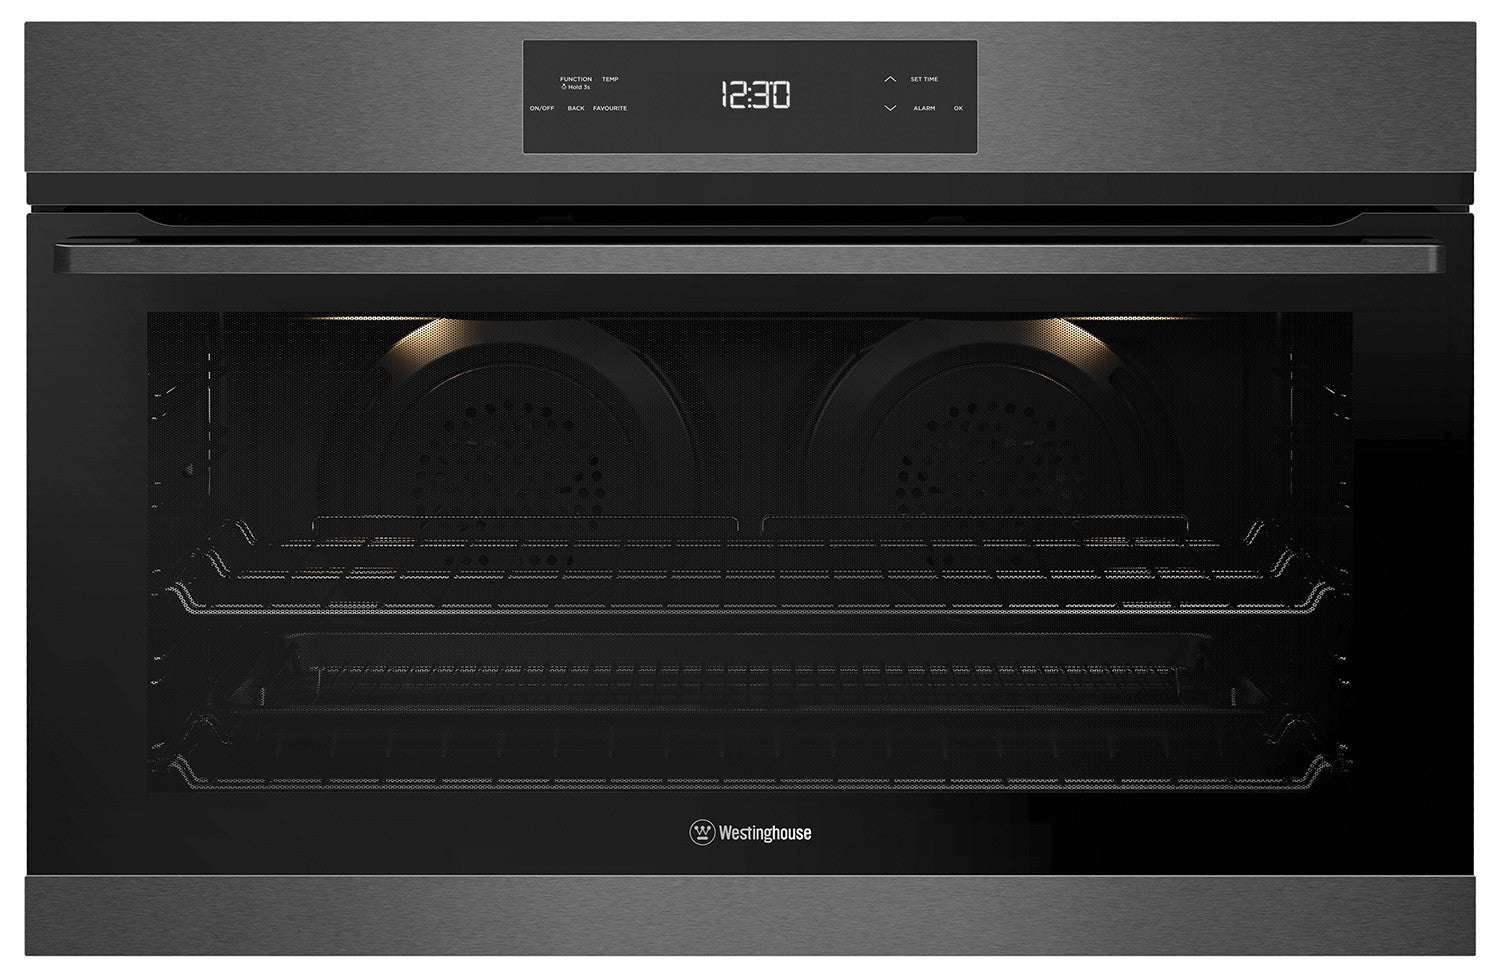 Westinghouse WVE915DSCA 90cm Multifunction Oven, dark stainless steel